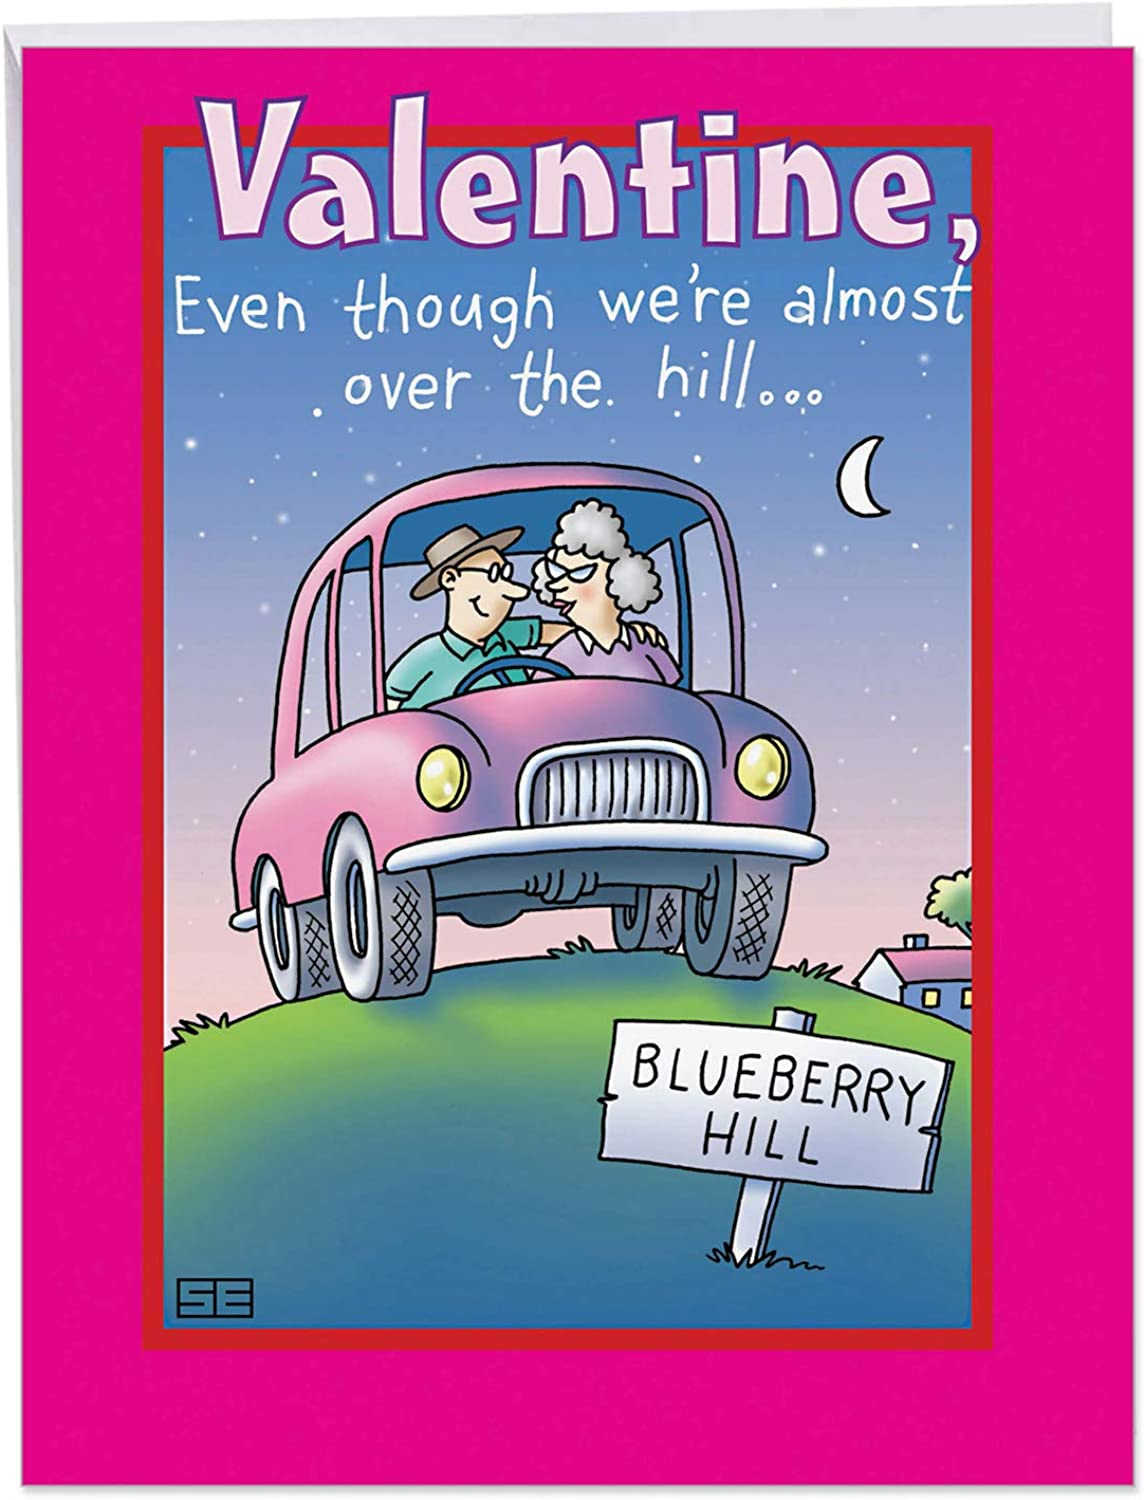 Over The Hill My Thrill Valentine 's Day Funny Grußkarte 1 Jumbo Valentine's Day Card & Enve. (J2427) 1 Jumbo Valentine's Day Card & Enve. (J2427) B00RD7NG18   Attraktive Mode